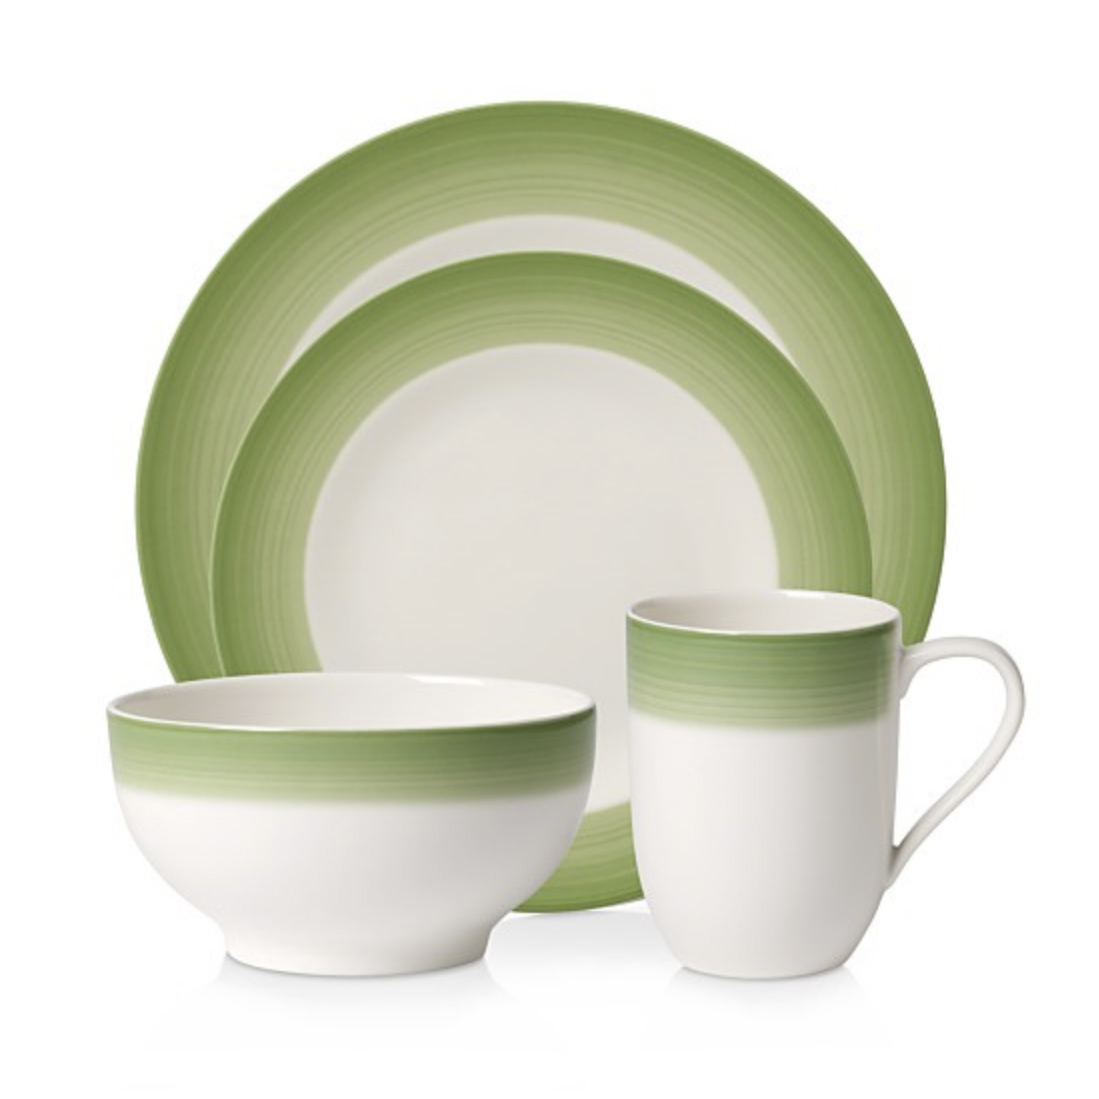 green bordered dinnerware.jpg